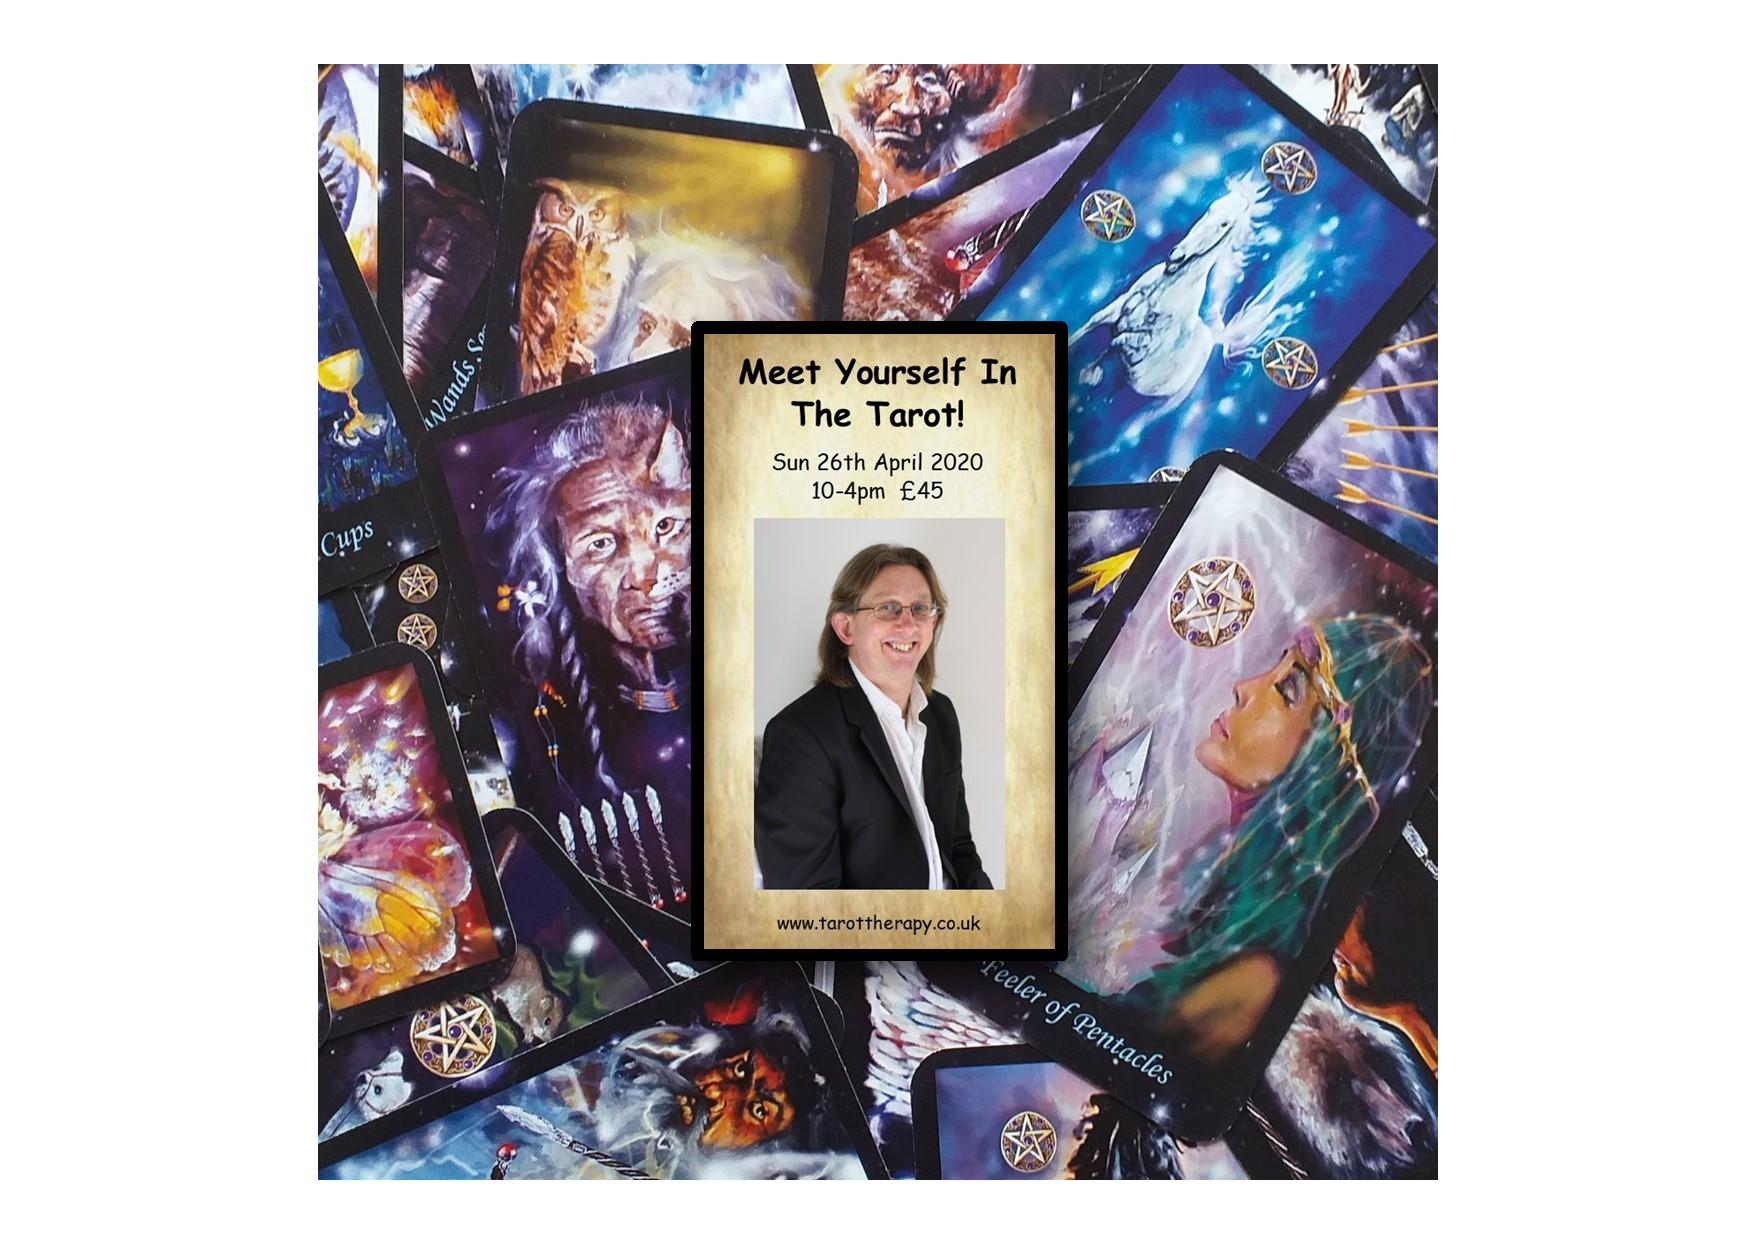 Meet Yourself In the Tarot! - 1 day Workshop in Poole!